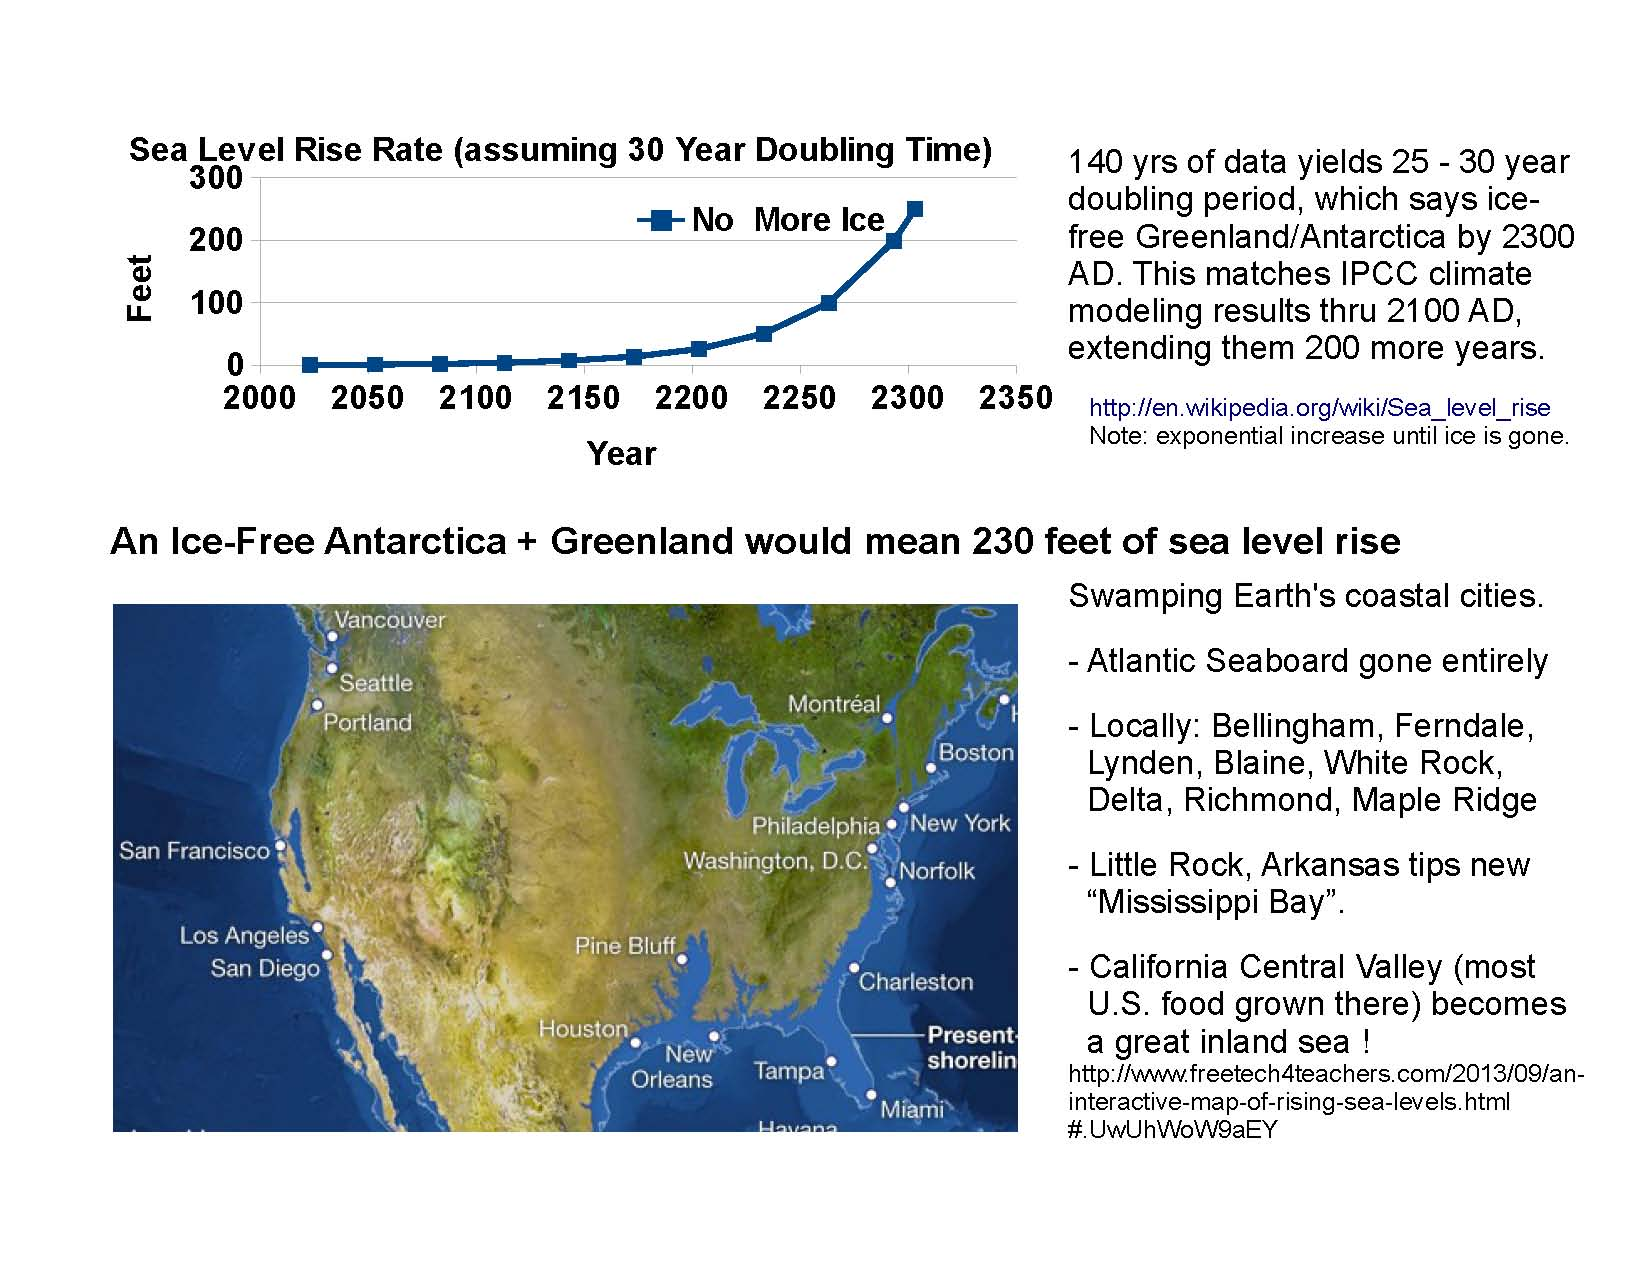 Sea Level Rise in 350 Years